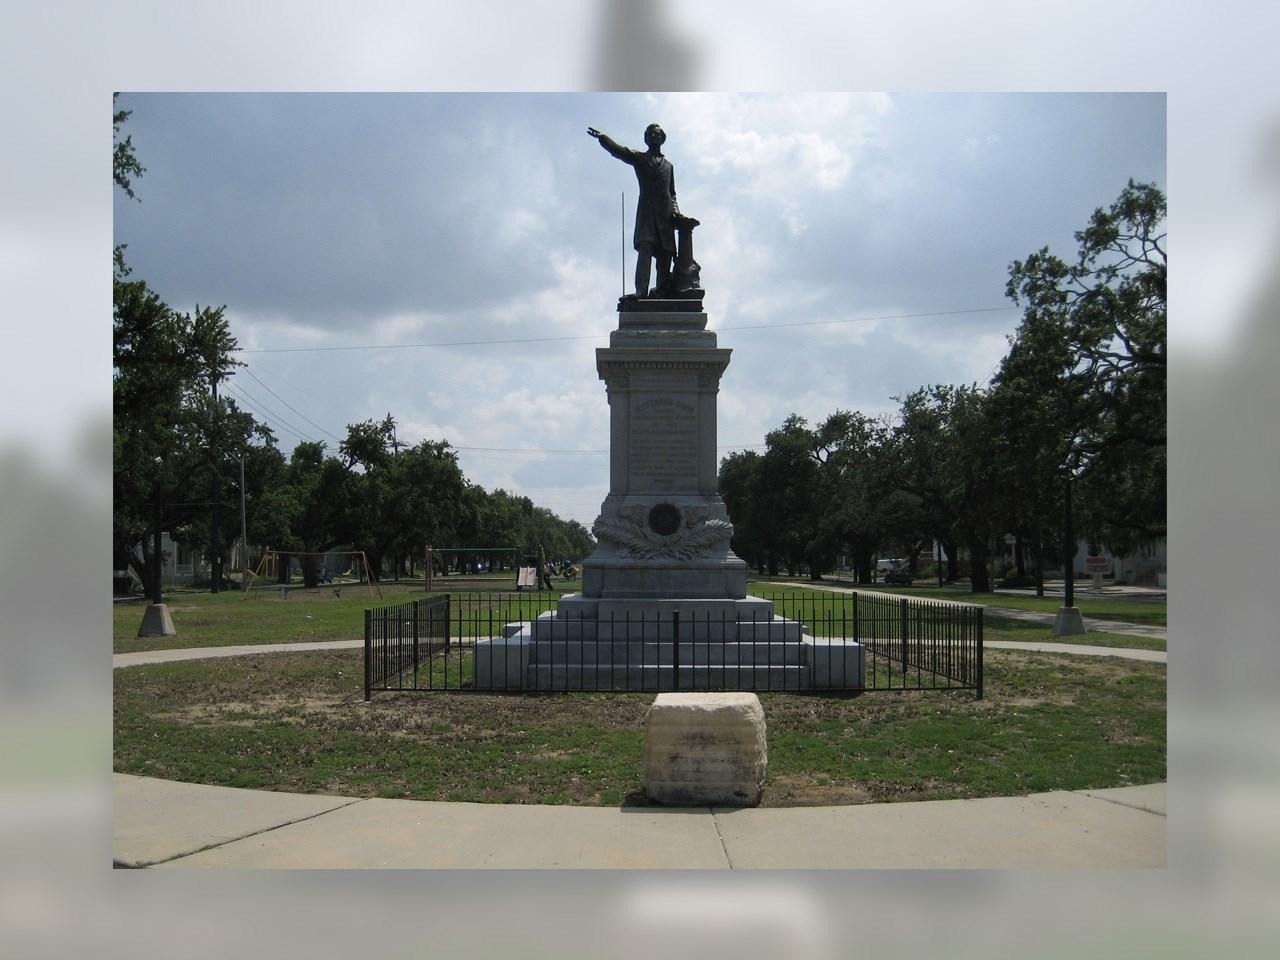 A city news release says workers are preparing to take down a statue of Confederate President Jefferson Davis in New Orleans, the second of four monuments to Confederate era figures the City Council has voted to remove. (MGN /  Infrogmation / Wikipedia)